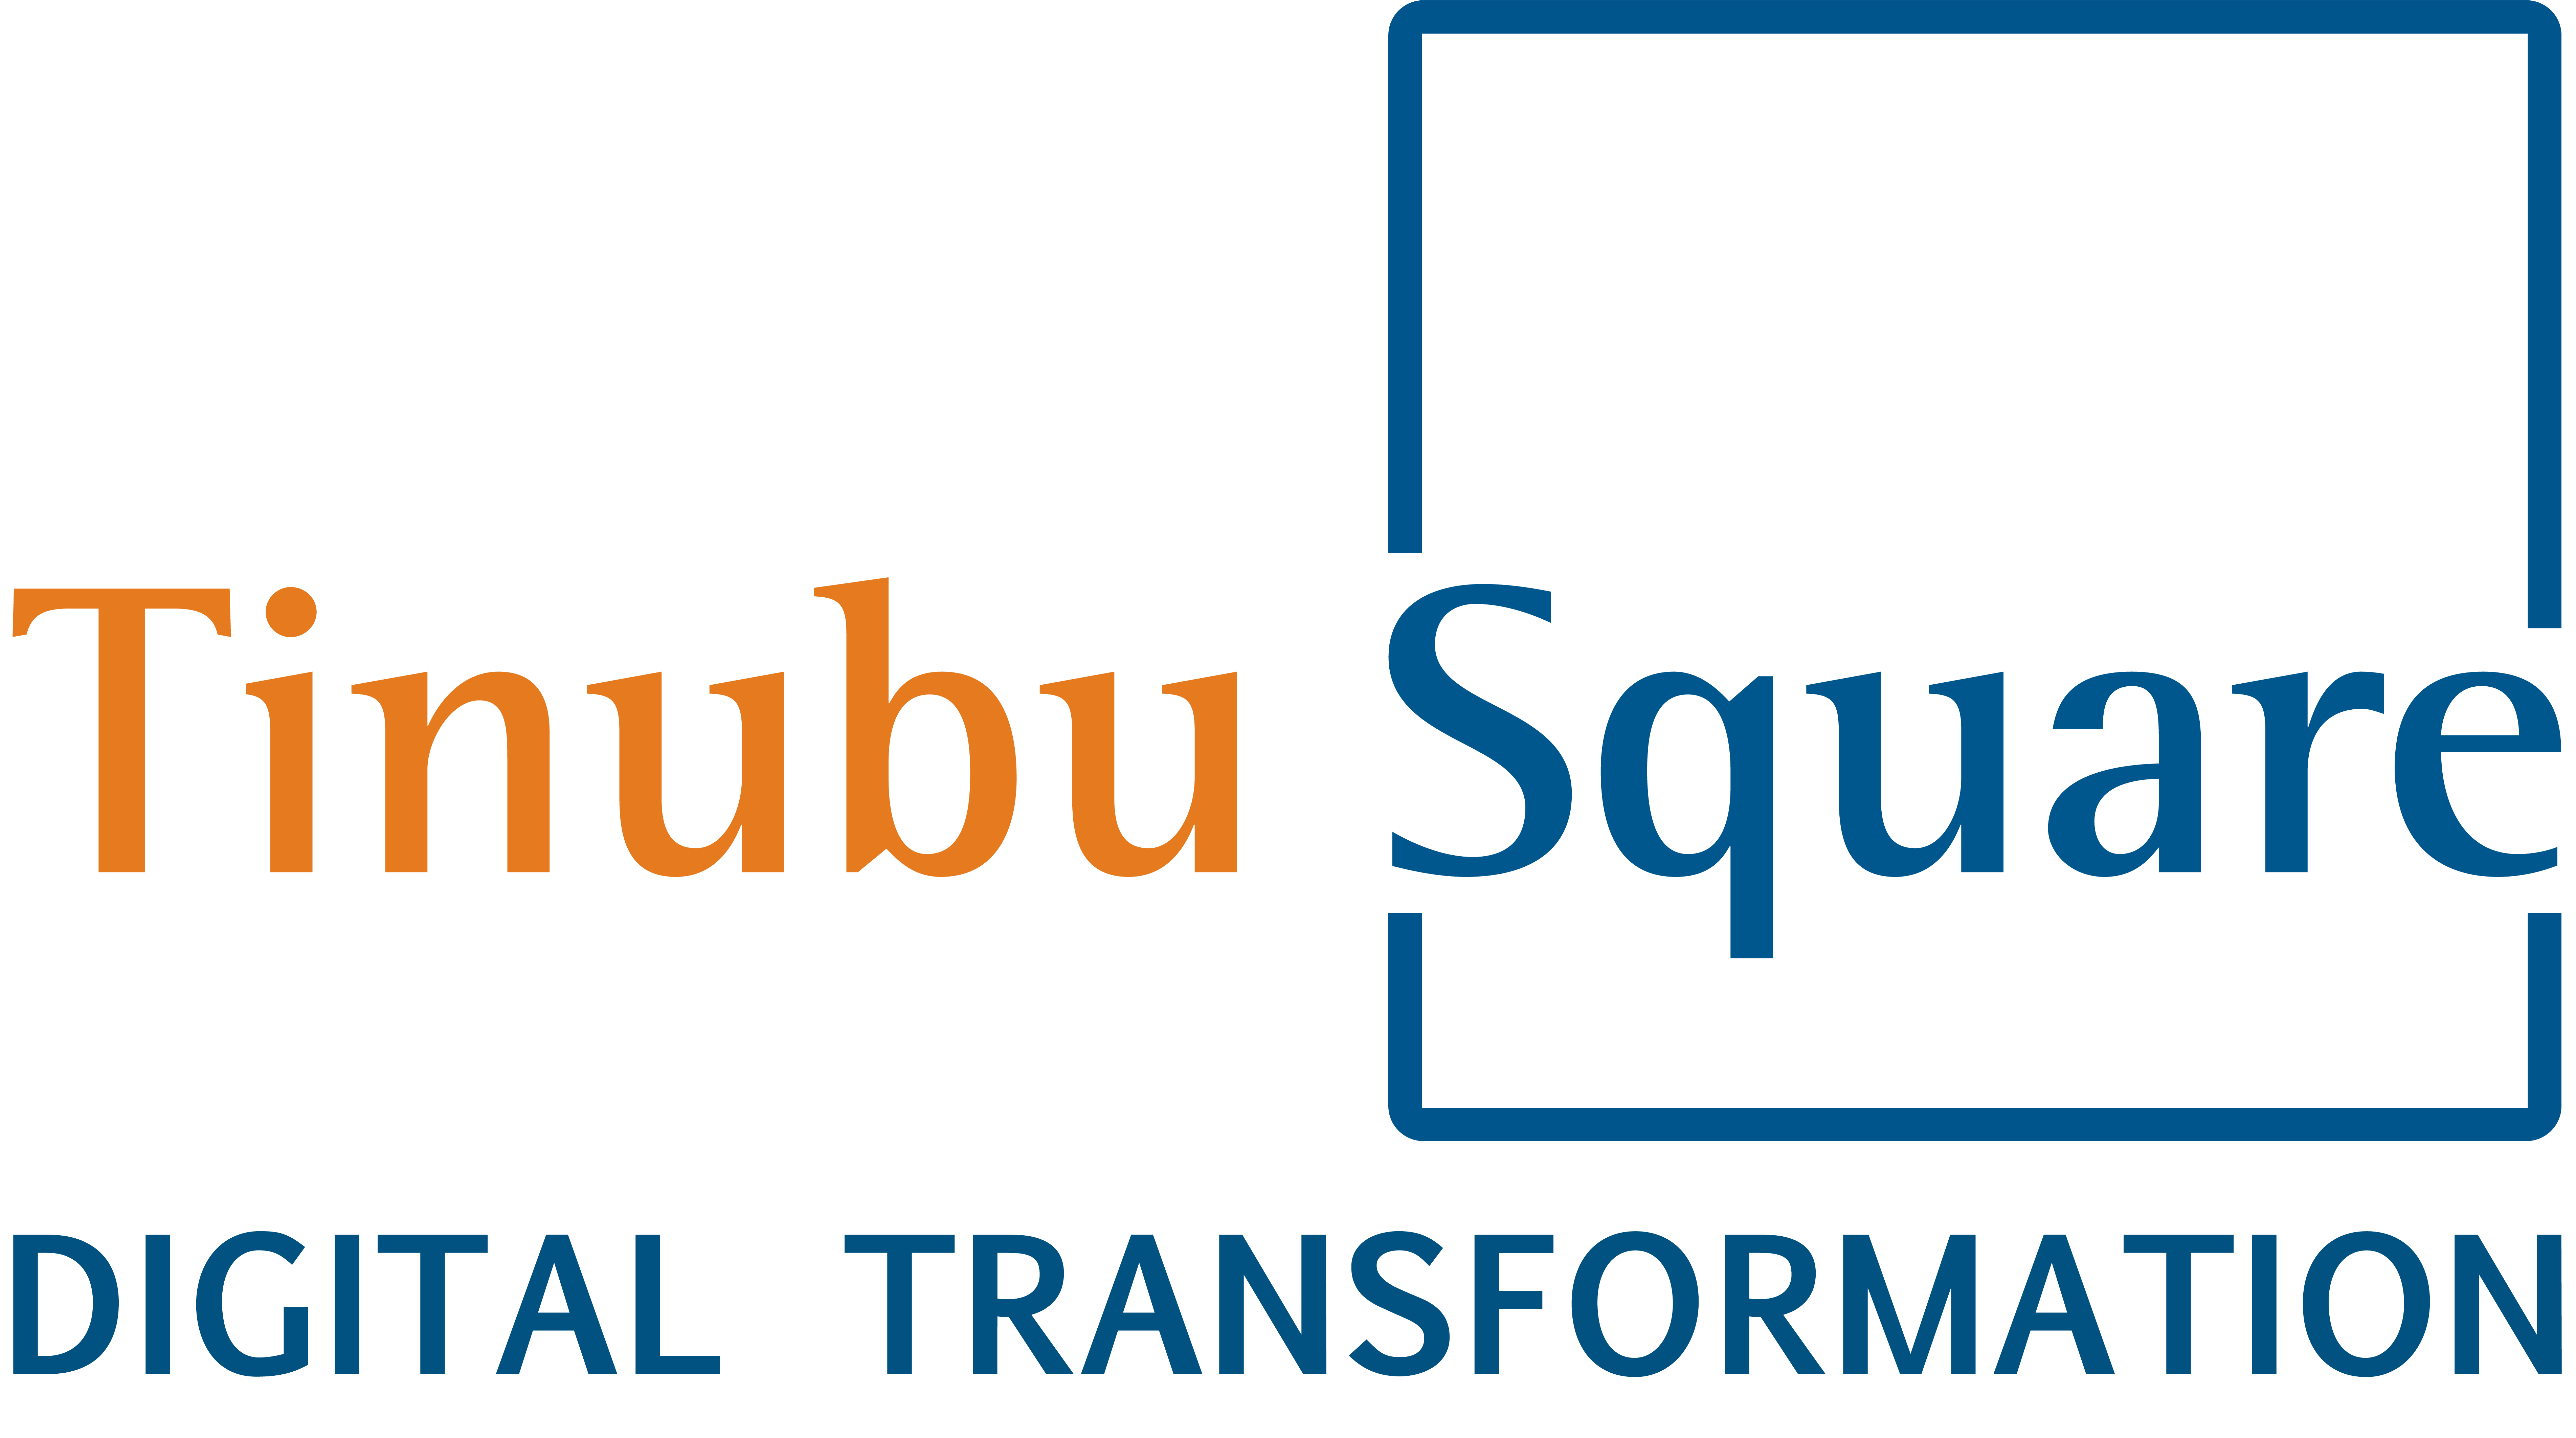 logo-tinubu-square-digital-transformation